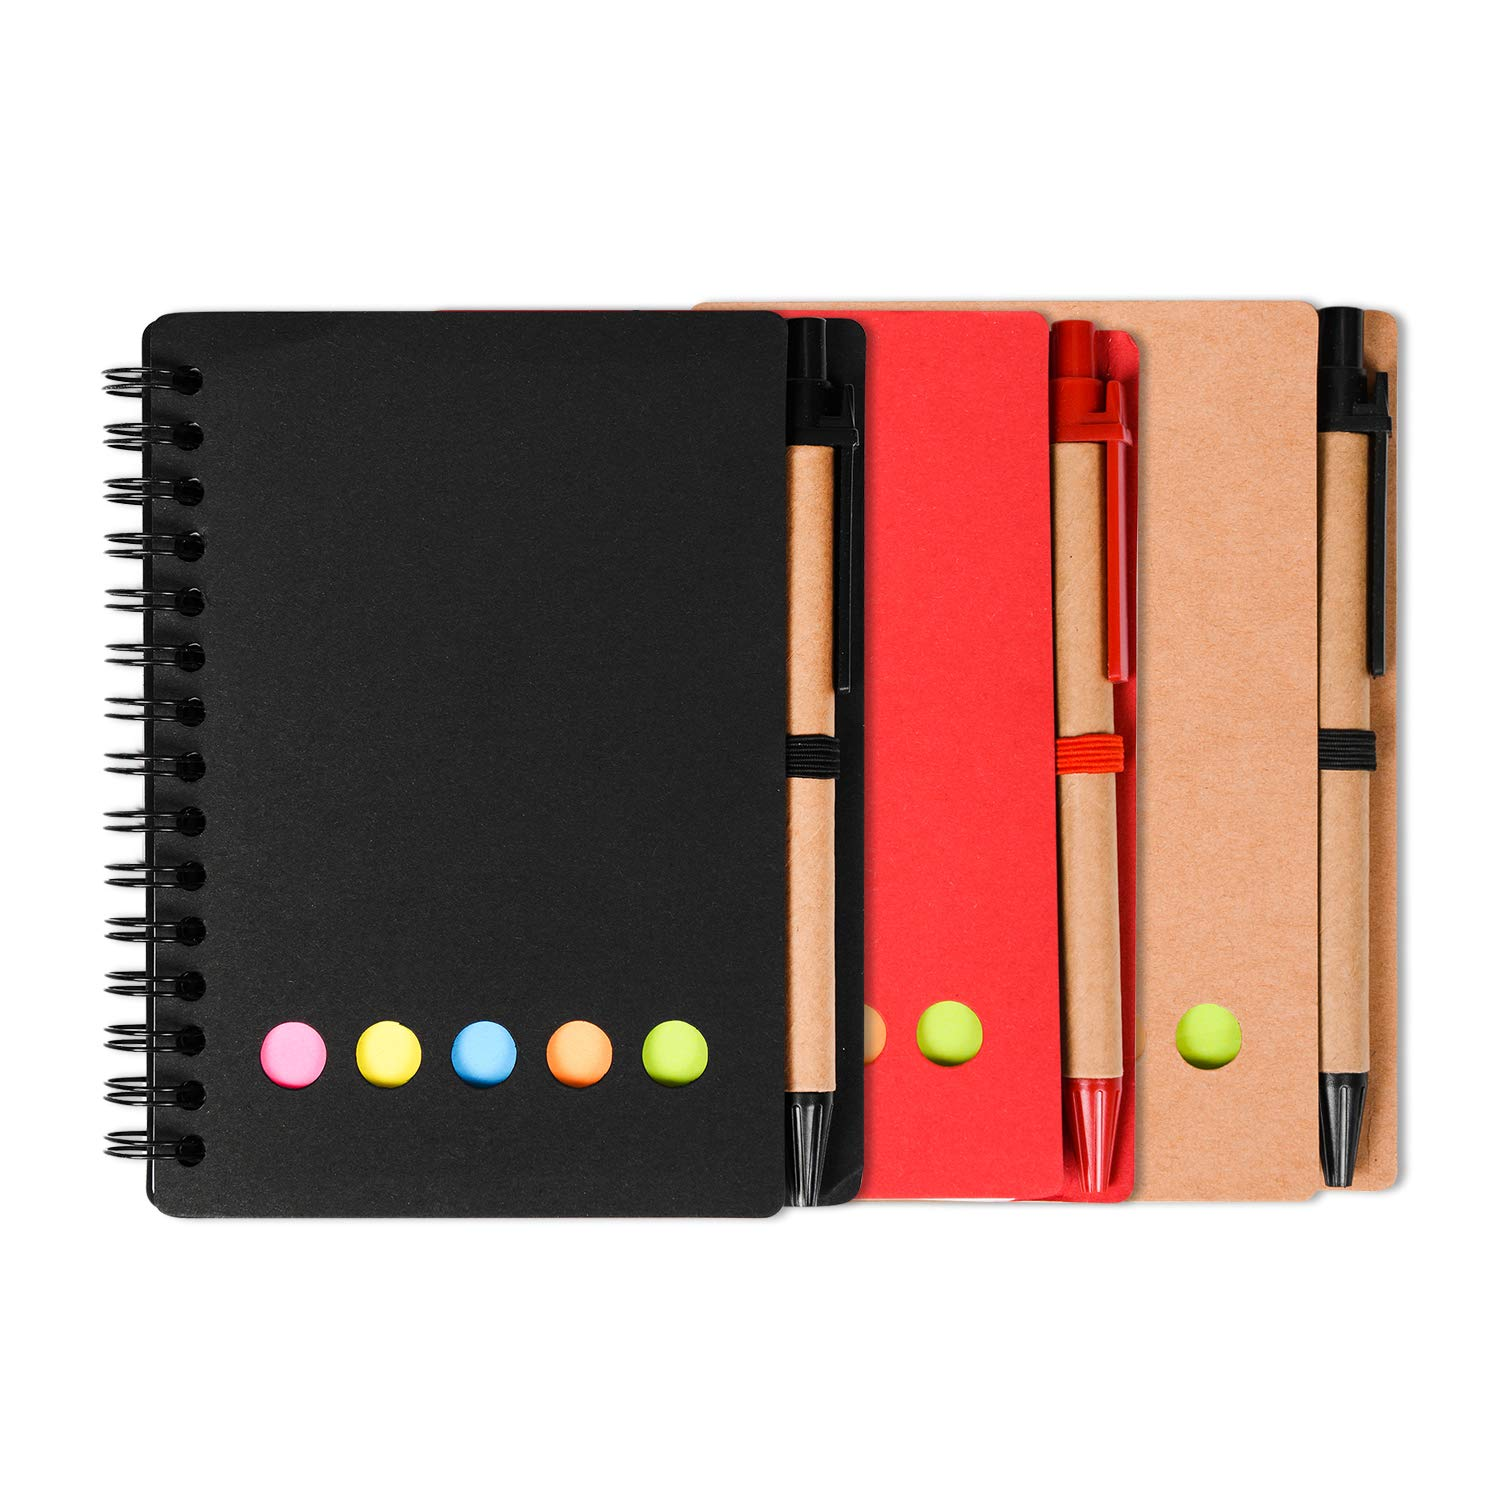 3 Packs 4.5''x5.5'' Spiral Notebook college ruled Pocket notebook Spiral Lined Notepad Set with Pen Loop and Sticky Notes, Page Marker Colored Index Tabs Flags (Black red and Brown Cover)